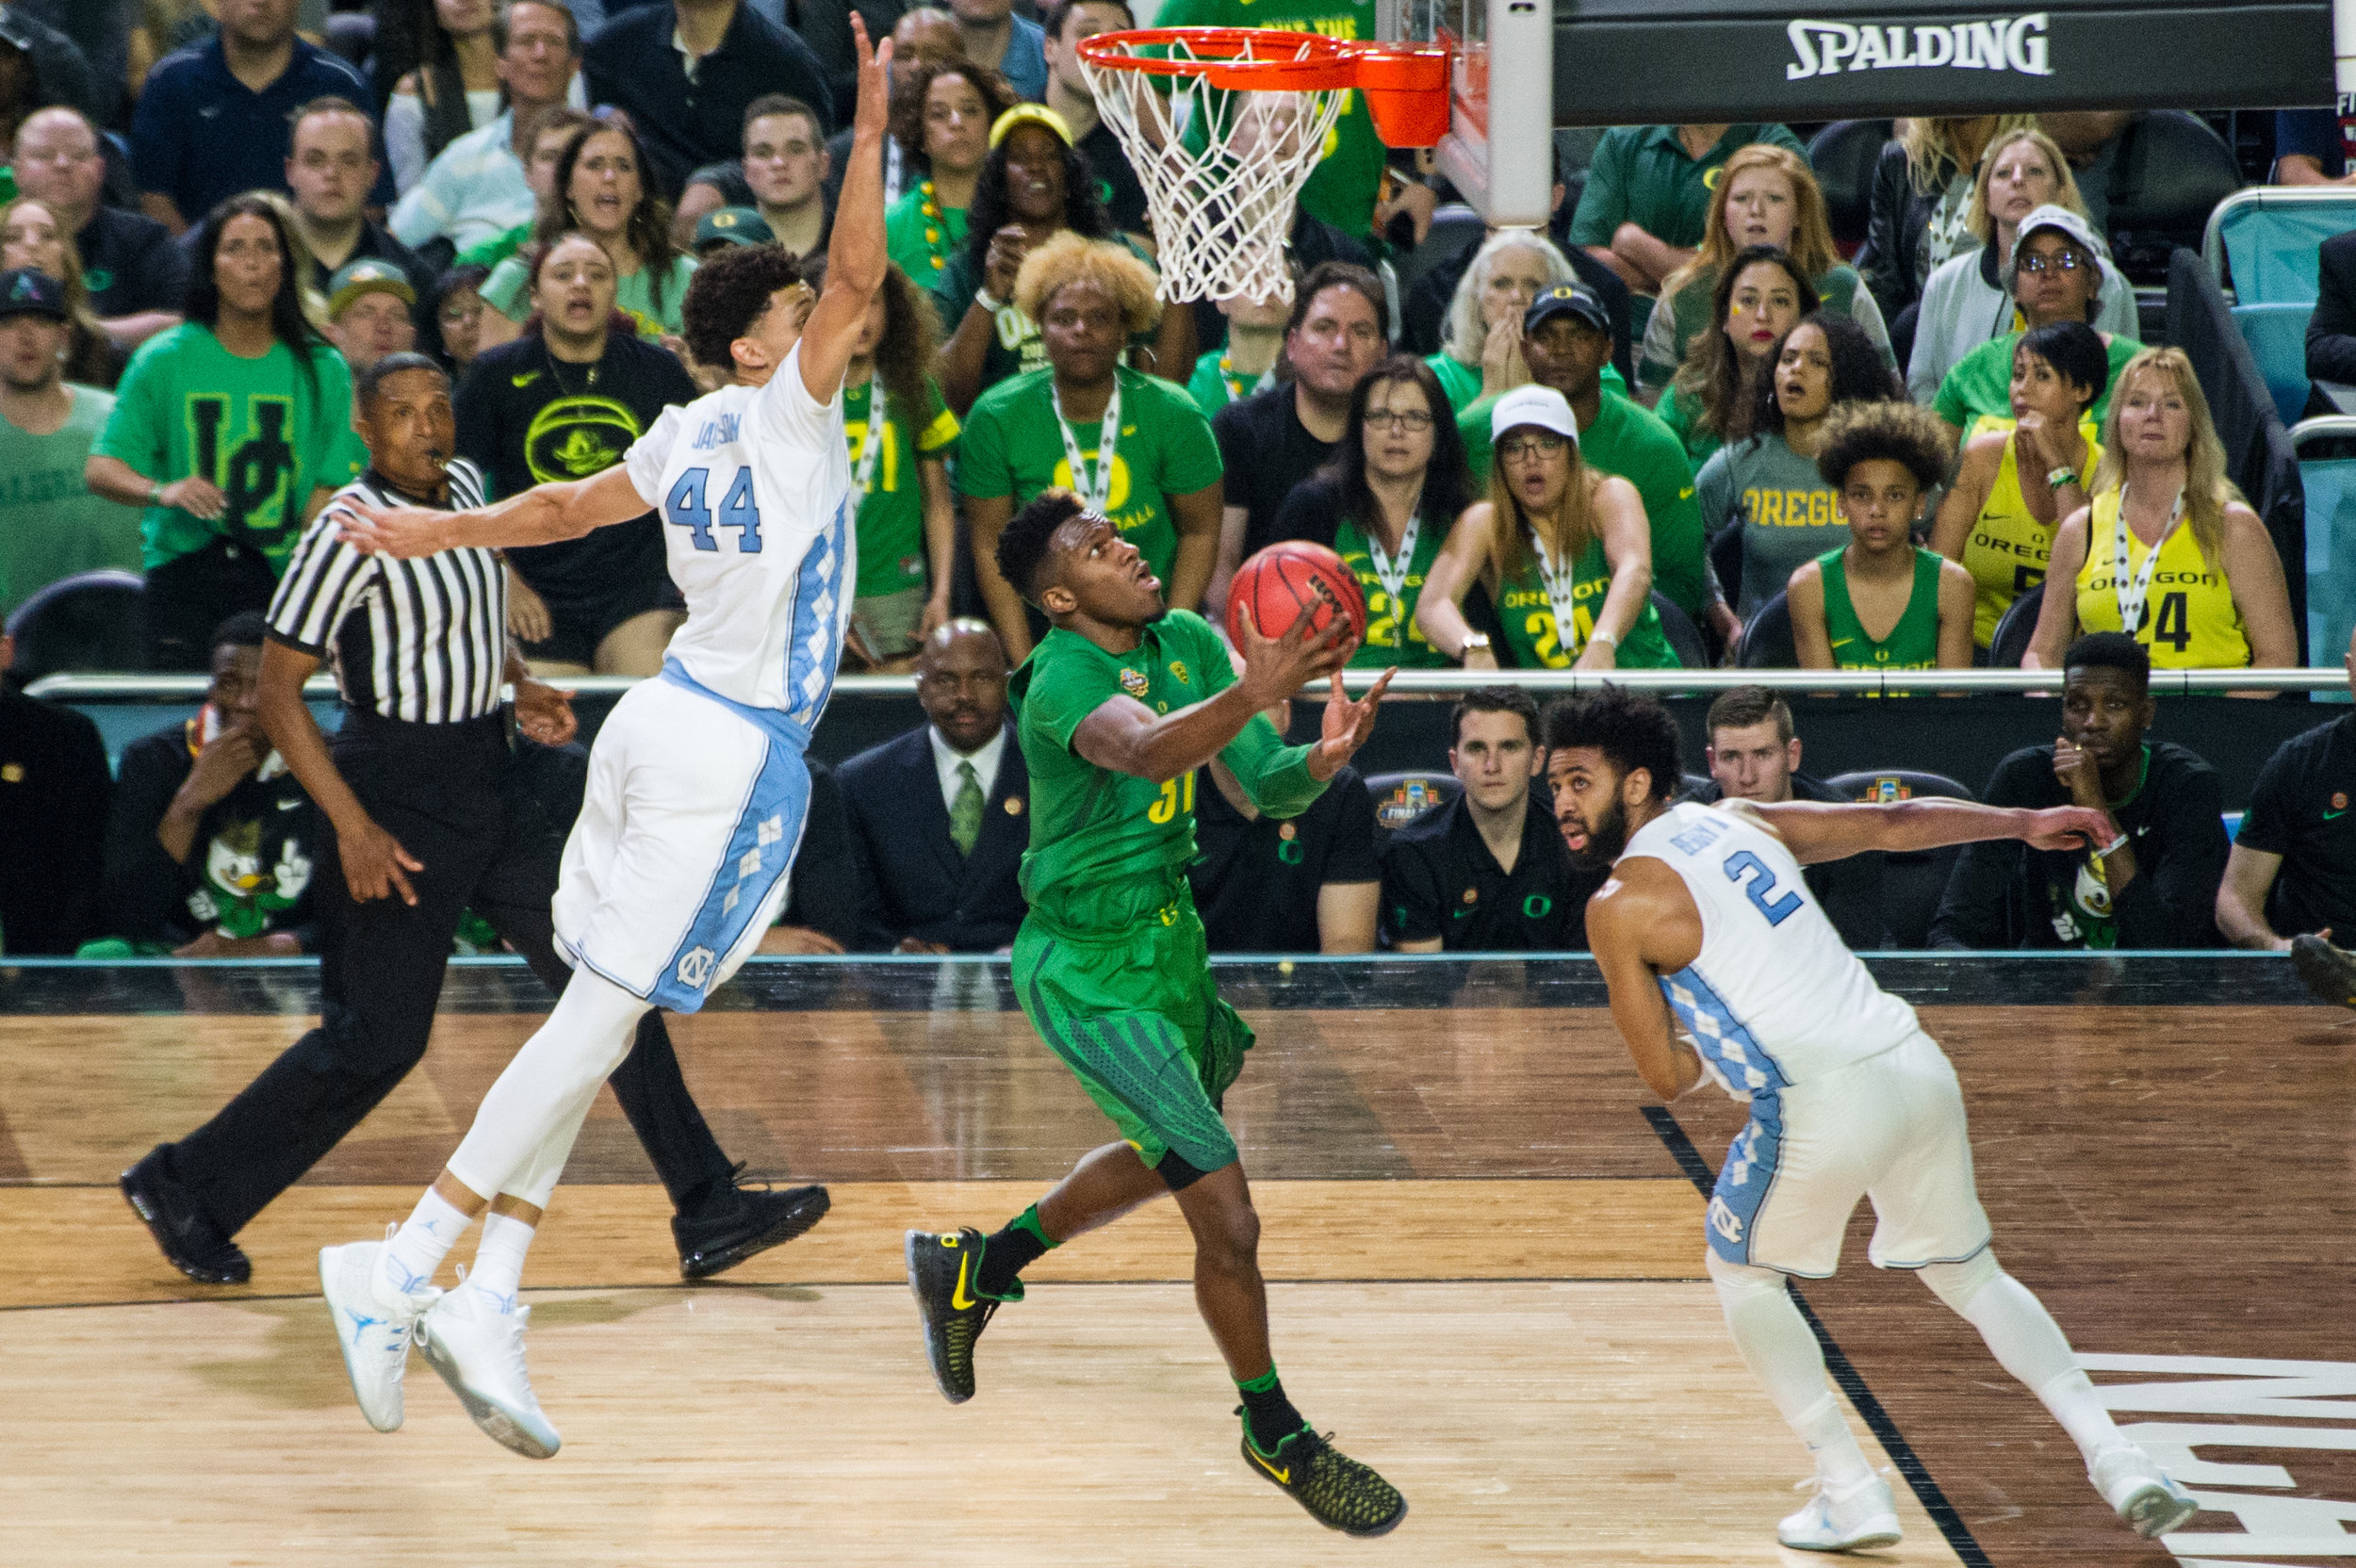 17.03.31.emg.an.final.four.oregon.vs.north.carolina-32.jpg